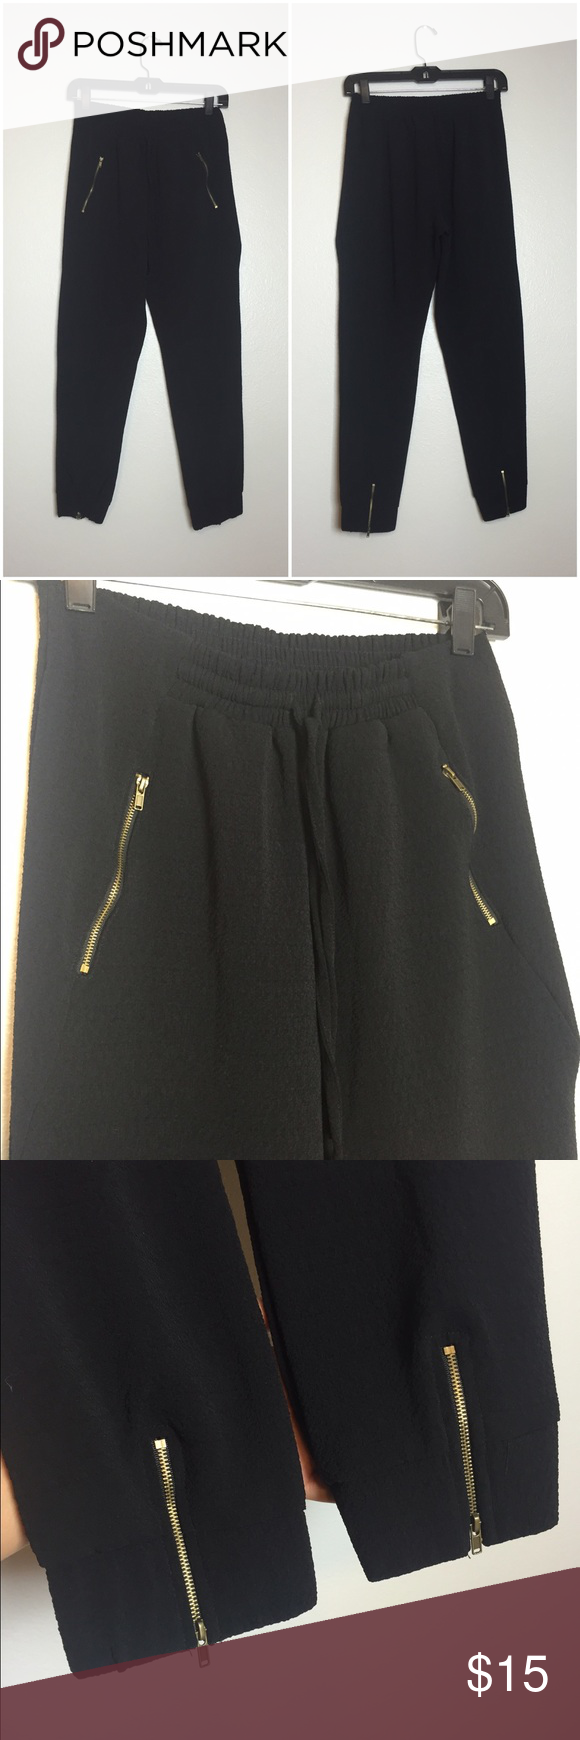 Dressy Joggers These aren't you're casual jogger sweats. The material is more pants-like and has two front zipper pockets and two zippers on the back ankles. Never worn. Price negotiable. TJ Maxx Pants